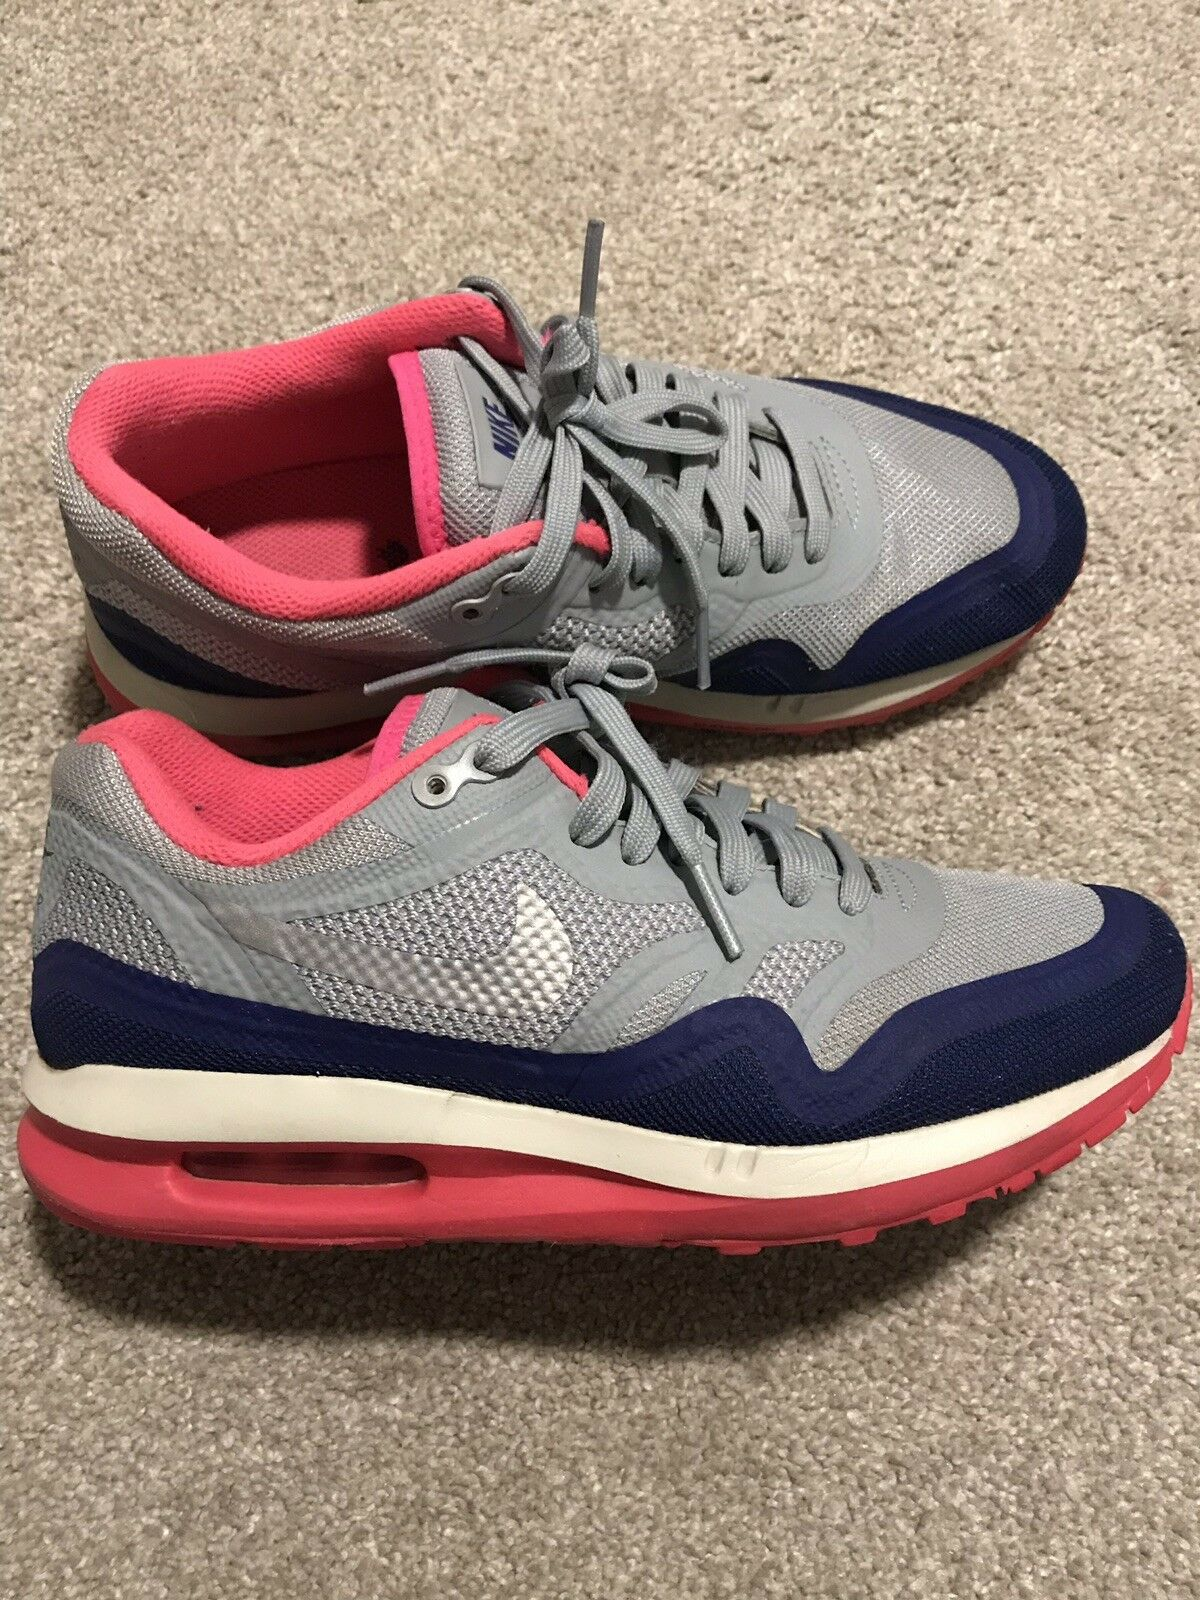 Nike Air Max Lunar 1 Light Magnet Grey Pure Pink Women's Size 7